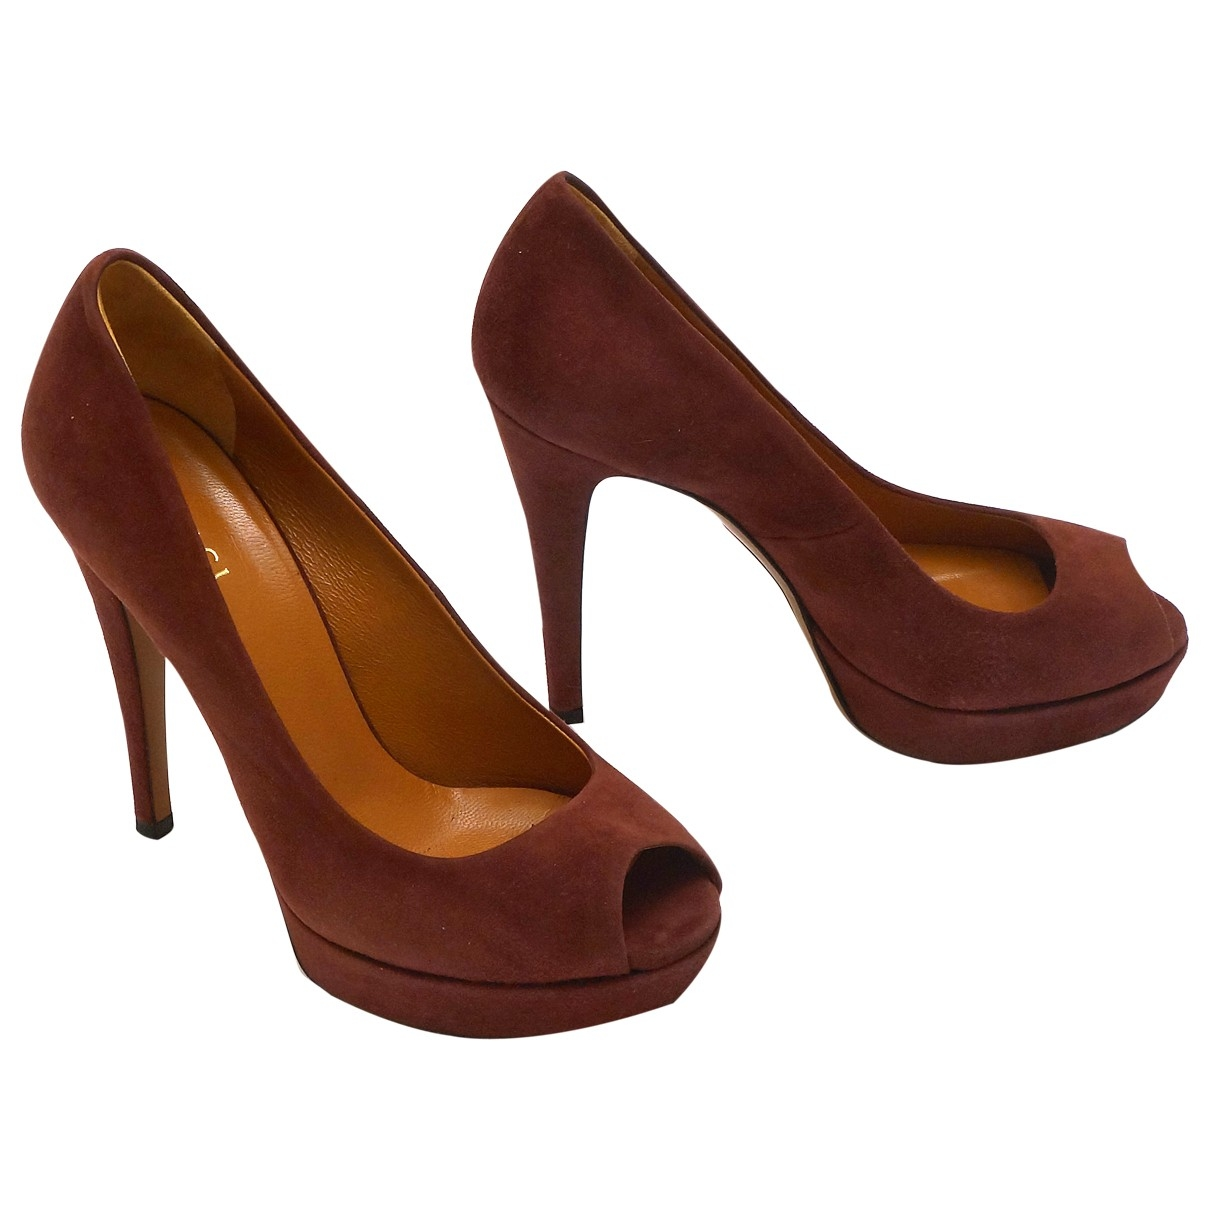 Gucci \N Burgundy Suede Heels for Women 35.5 EU